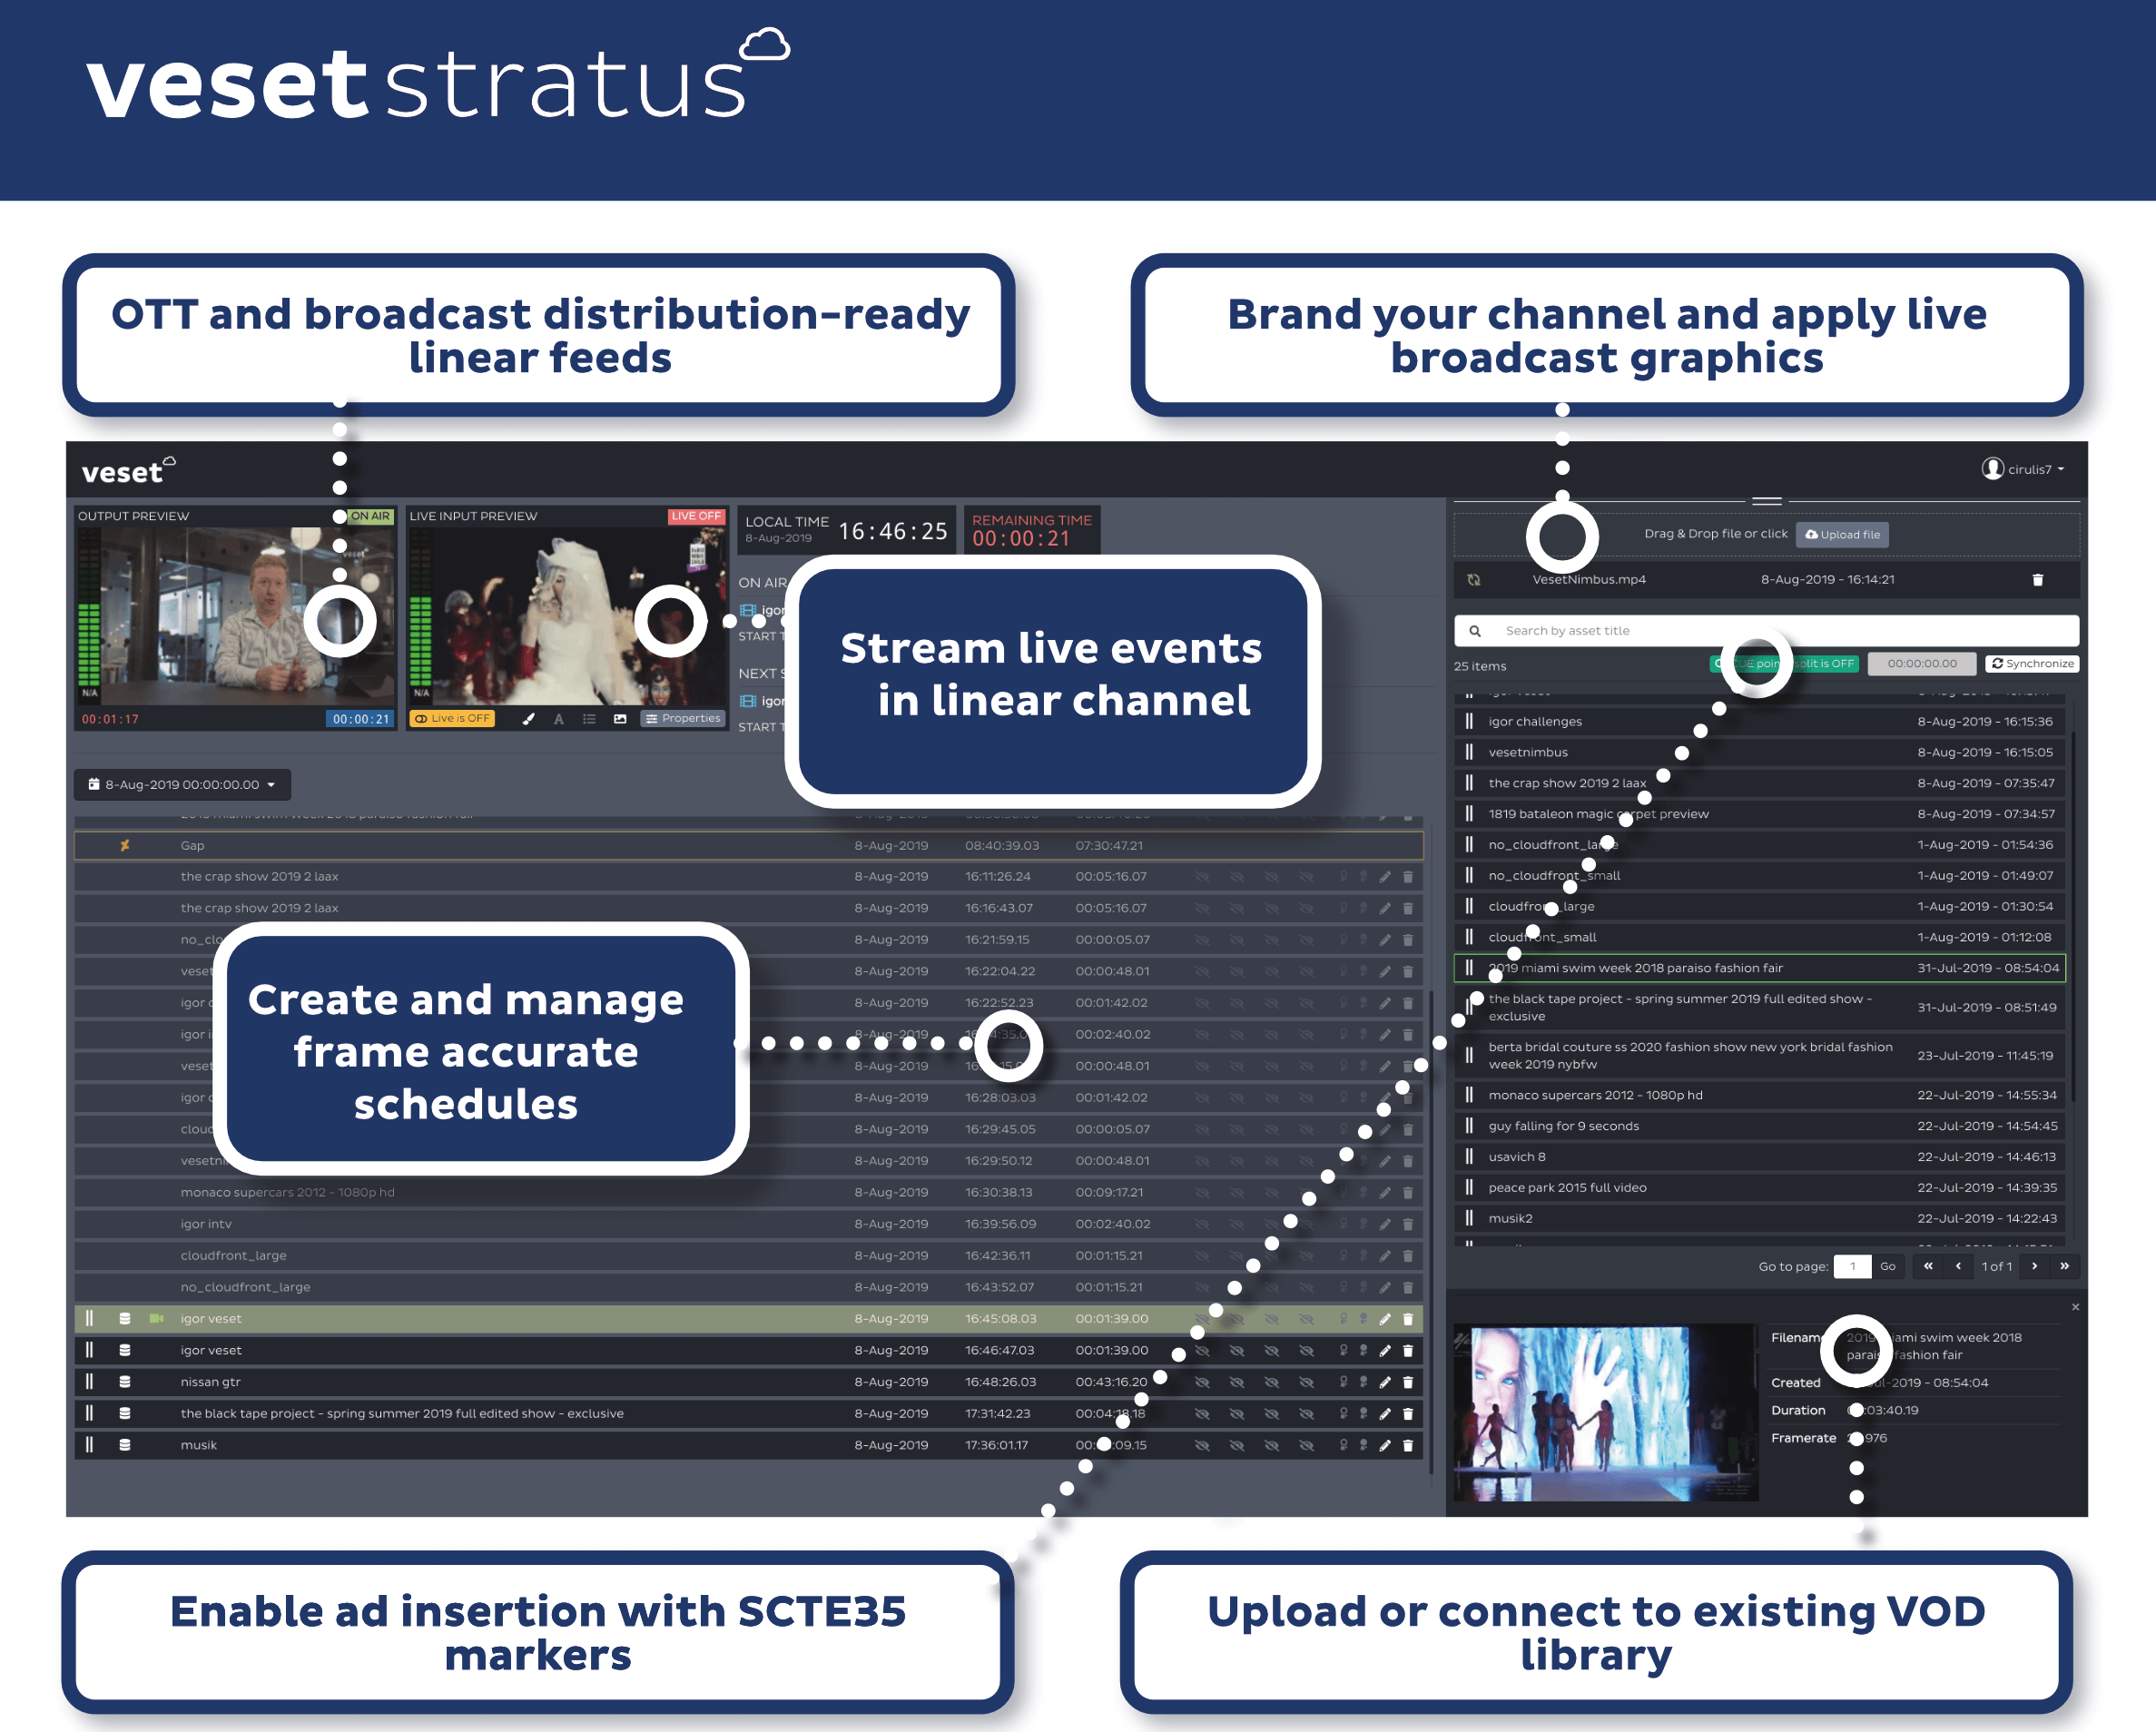 Veset Stratus - Linear TV made simple for the new generation